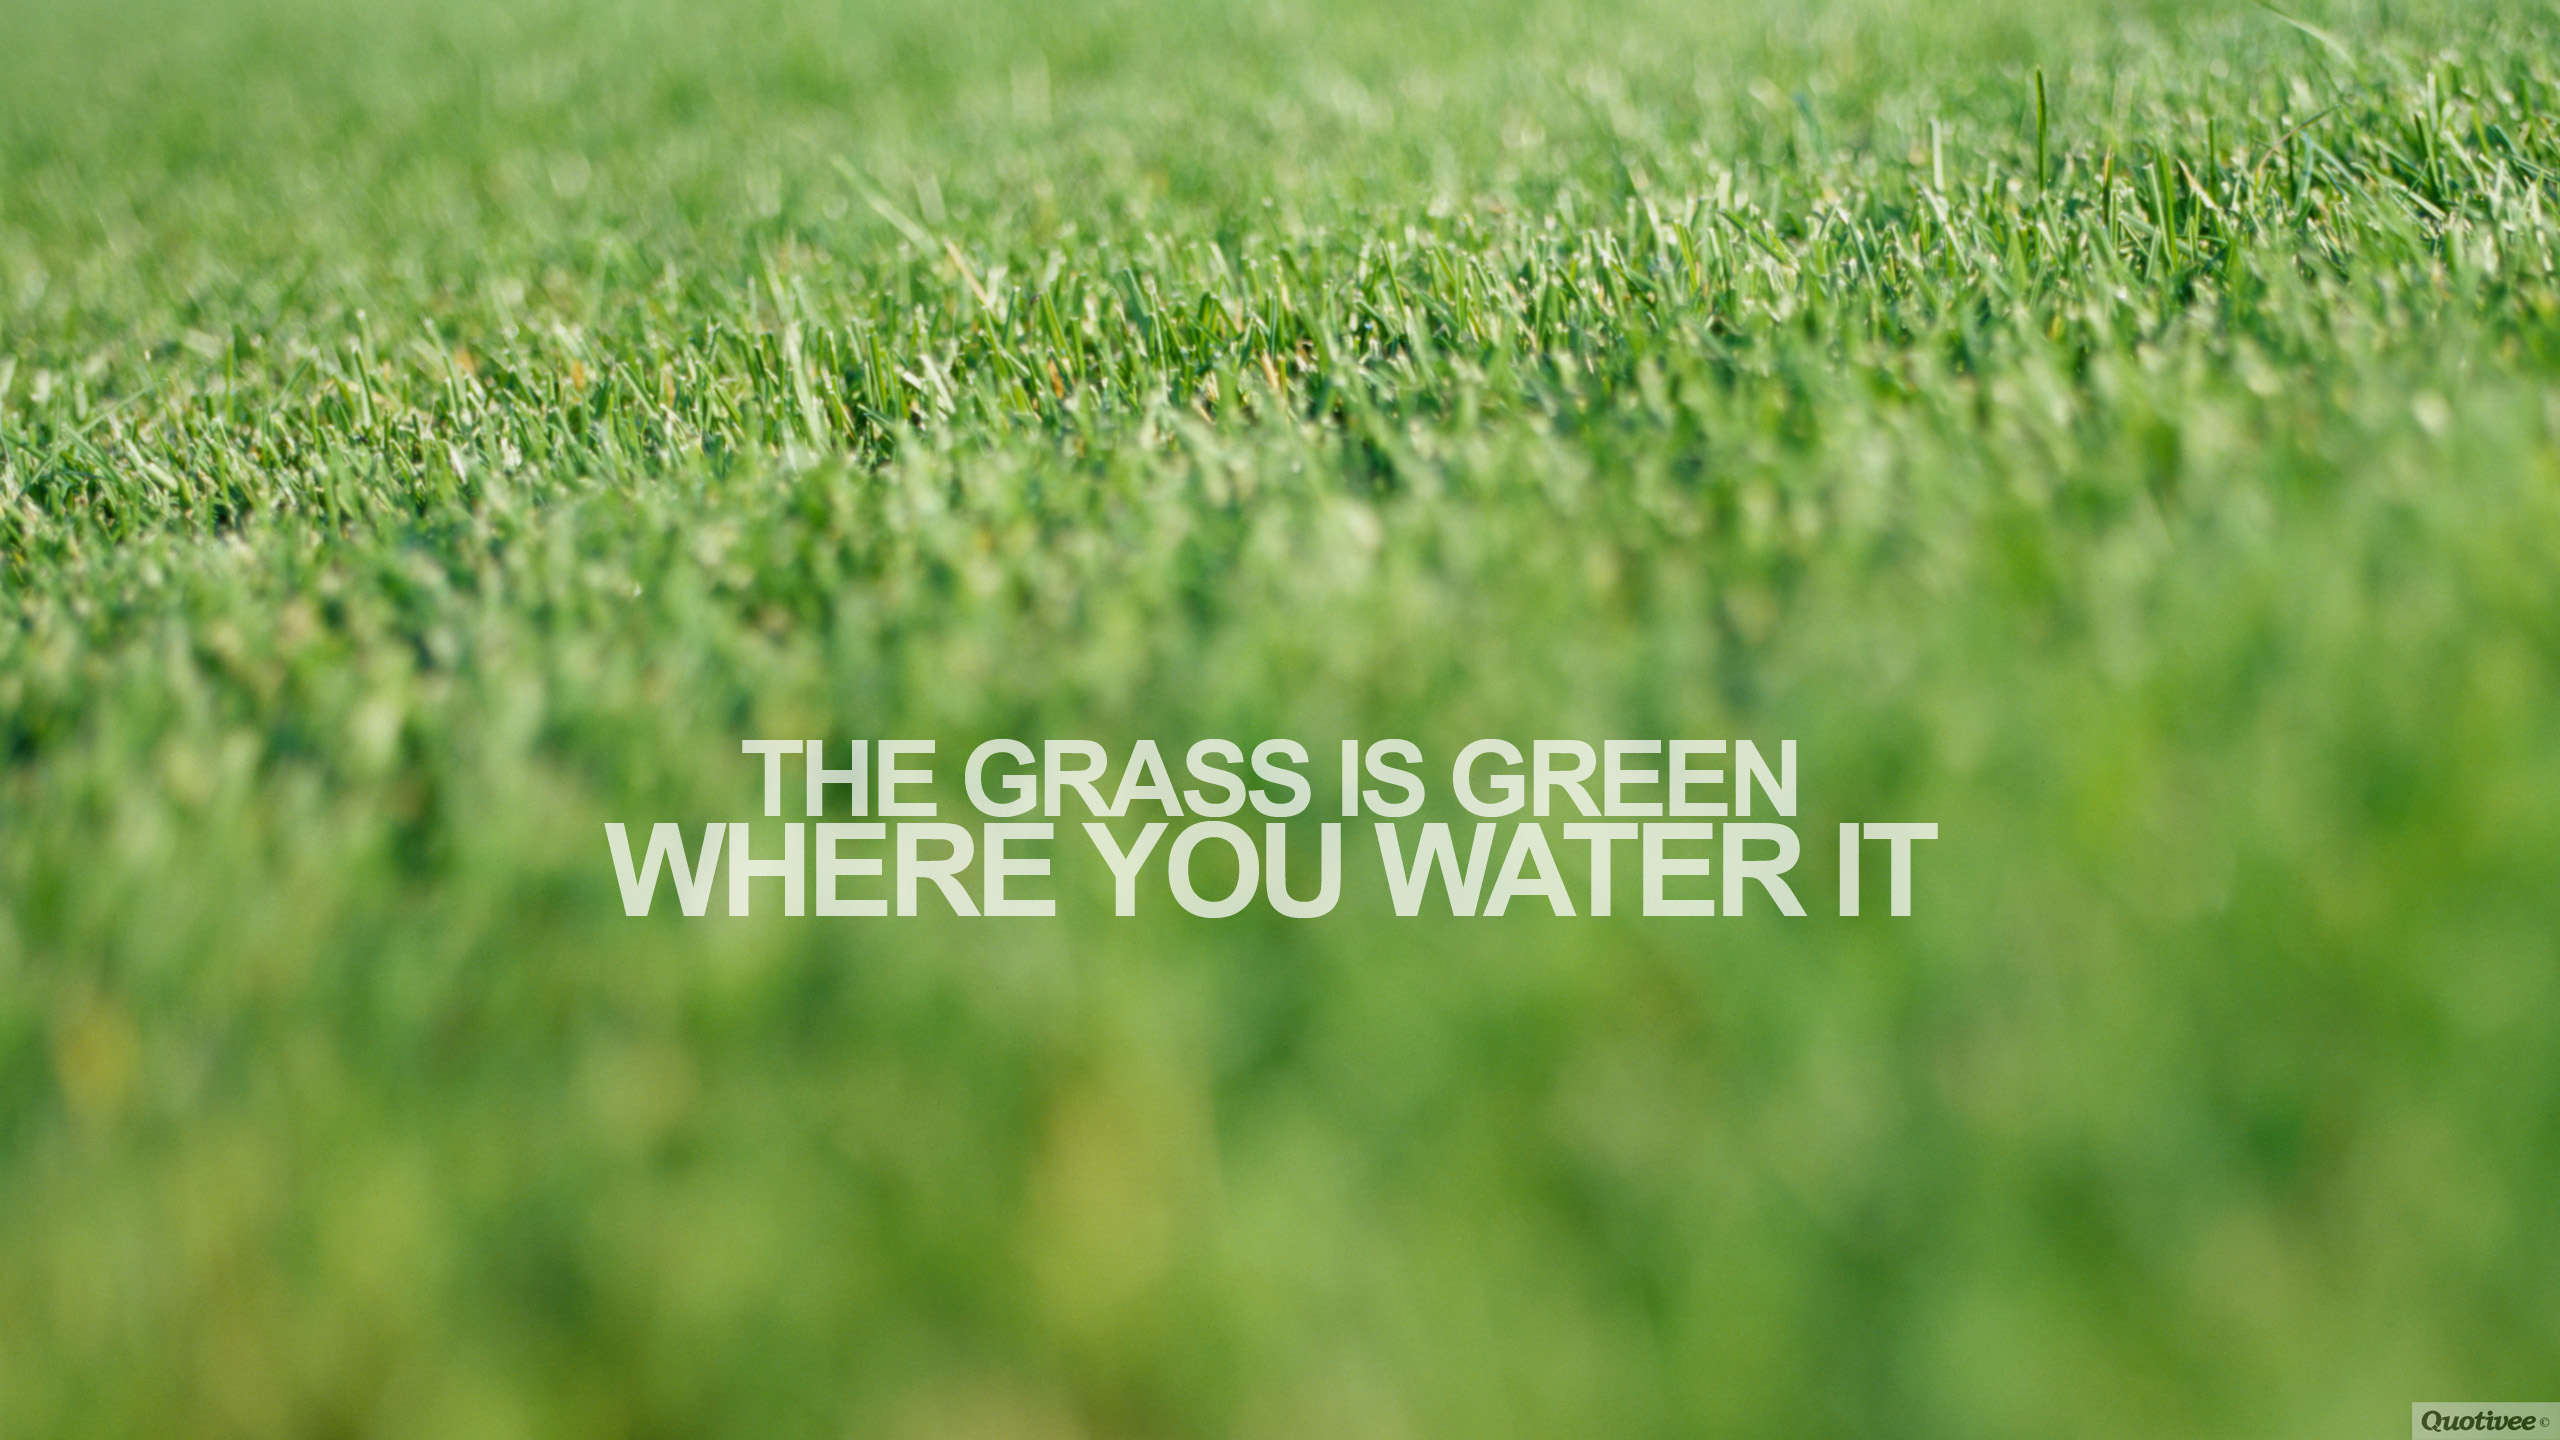 Harvey Specter Quotes Hd Wallpaper The Grass Is Green Inspirational Quotes Quotivee